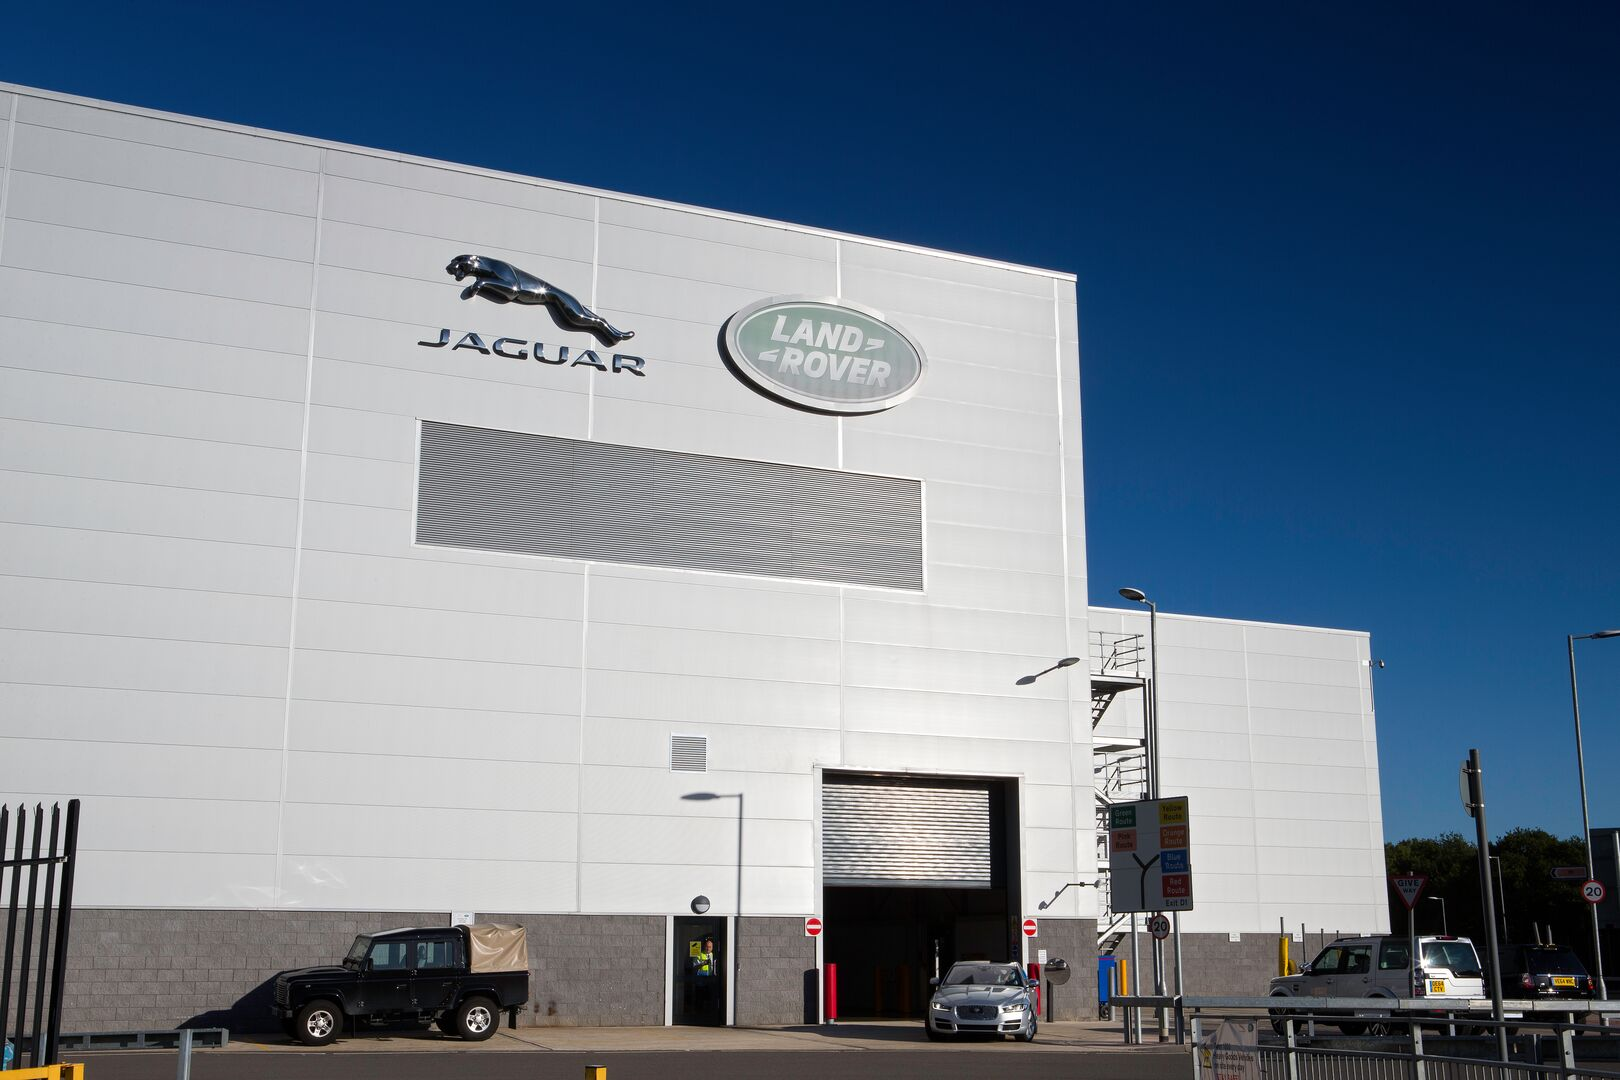 jaguar tata steel construction